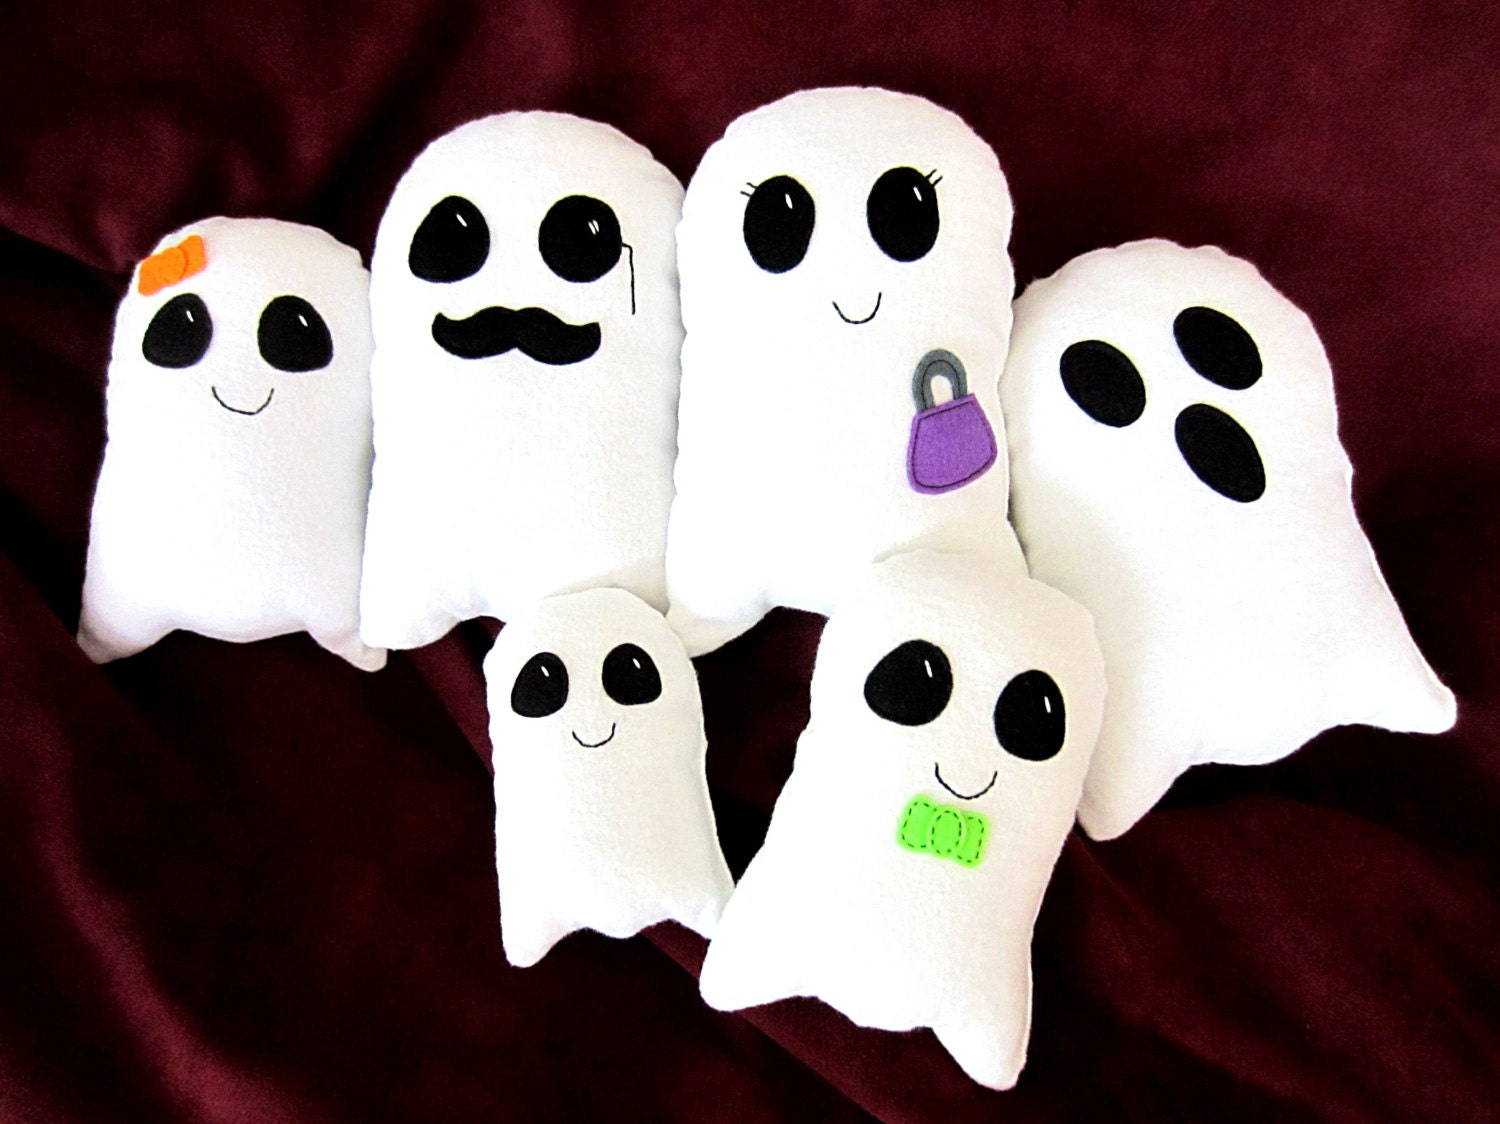 DIY Halloween Ghost Family Stuffed Toy PDF Sewing Pattern Tutorial, Decoration, Trick-or-Treat Favors by My Funny Buddy BONUS Felt Pattern - MyFunnyBuddy